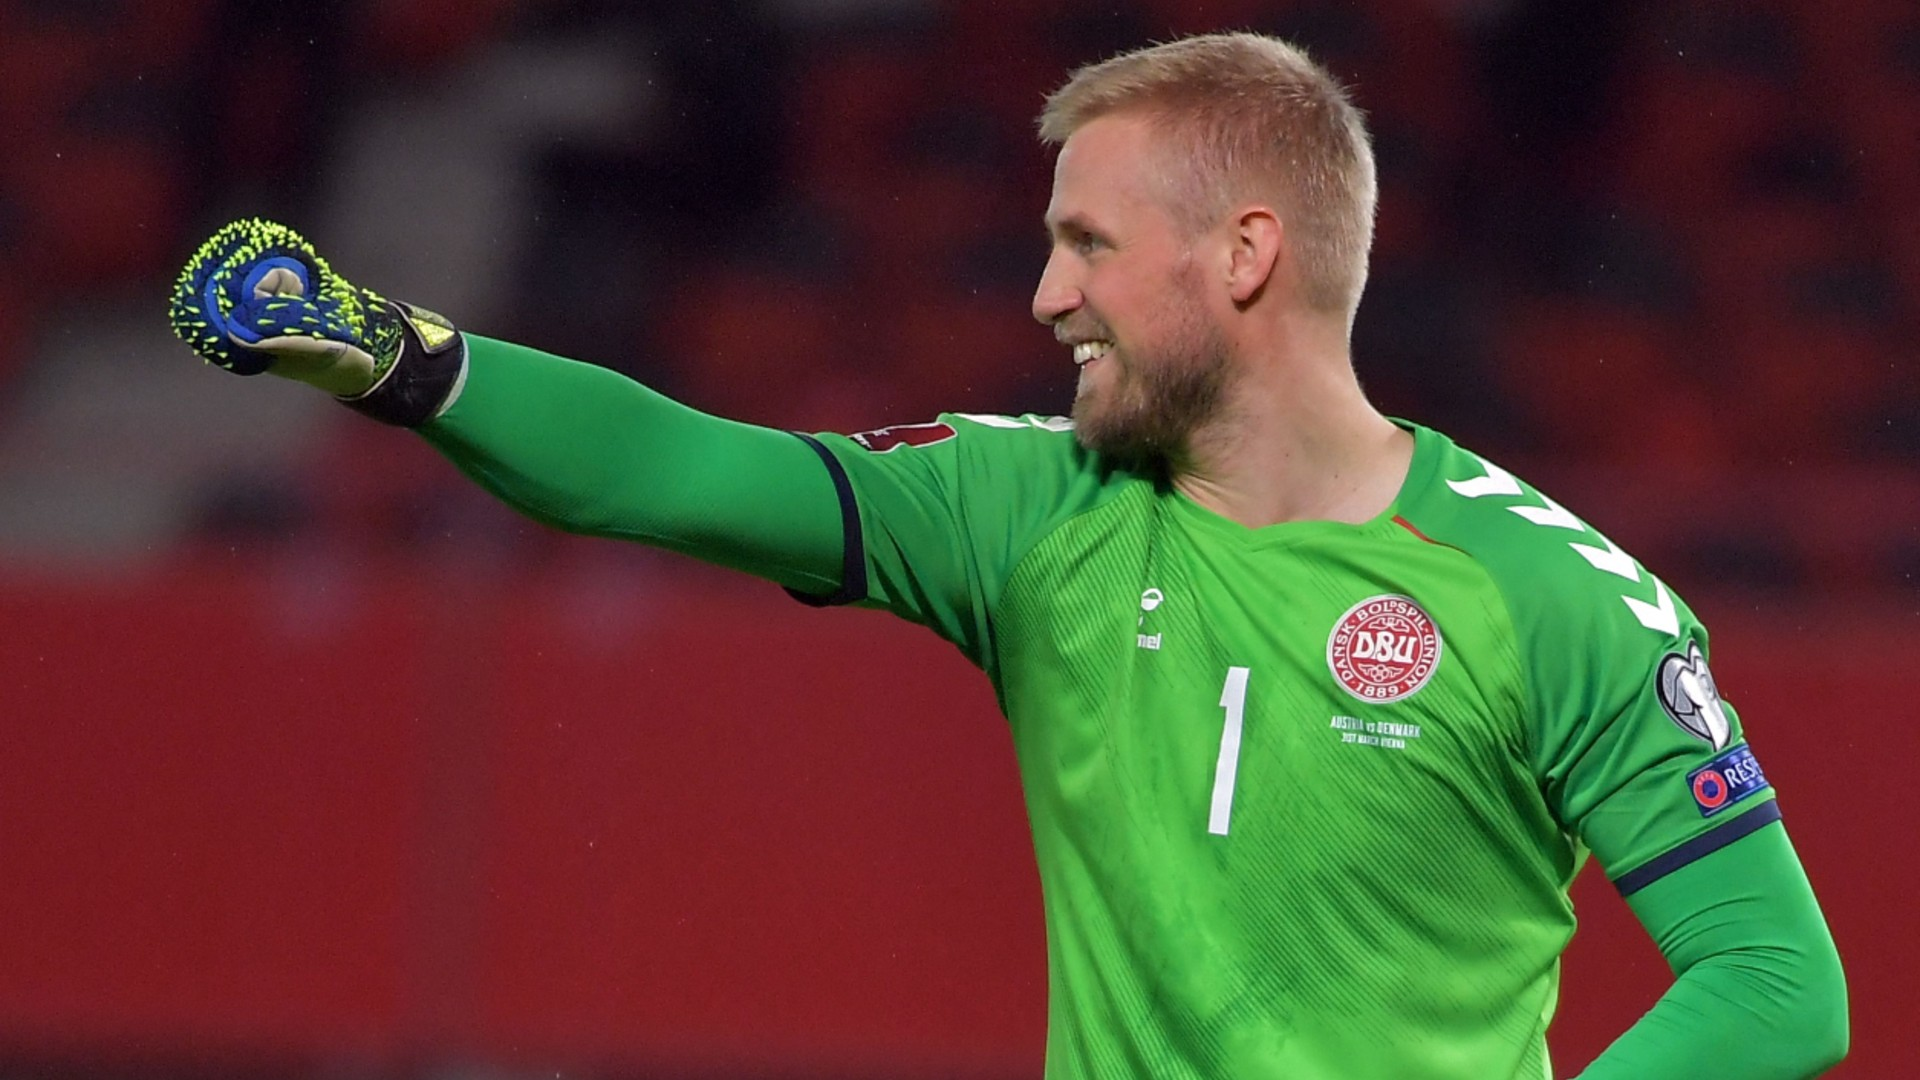 'Has it ever been home?' - Schmeichel aims cheeky dig at England ahead of Euro 2020 semi-final